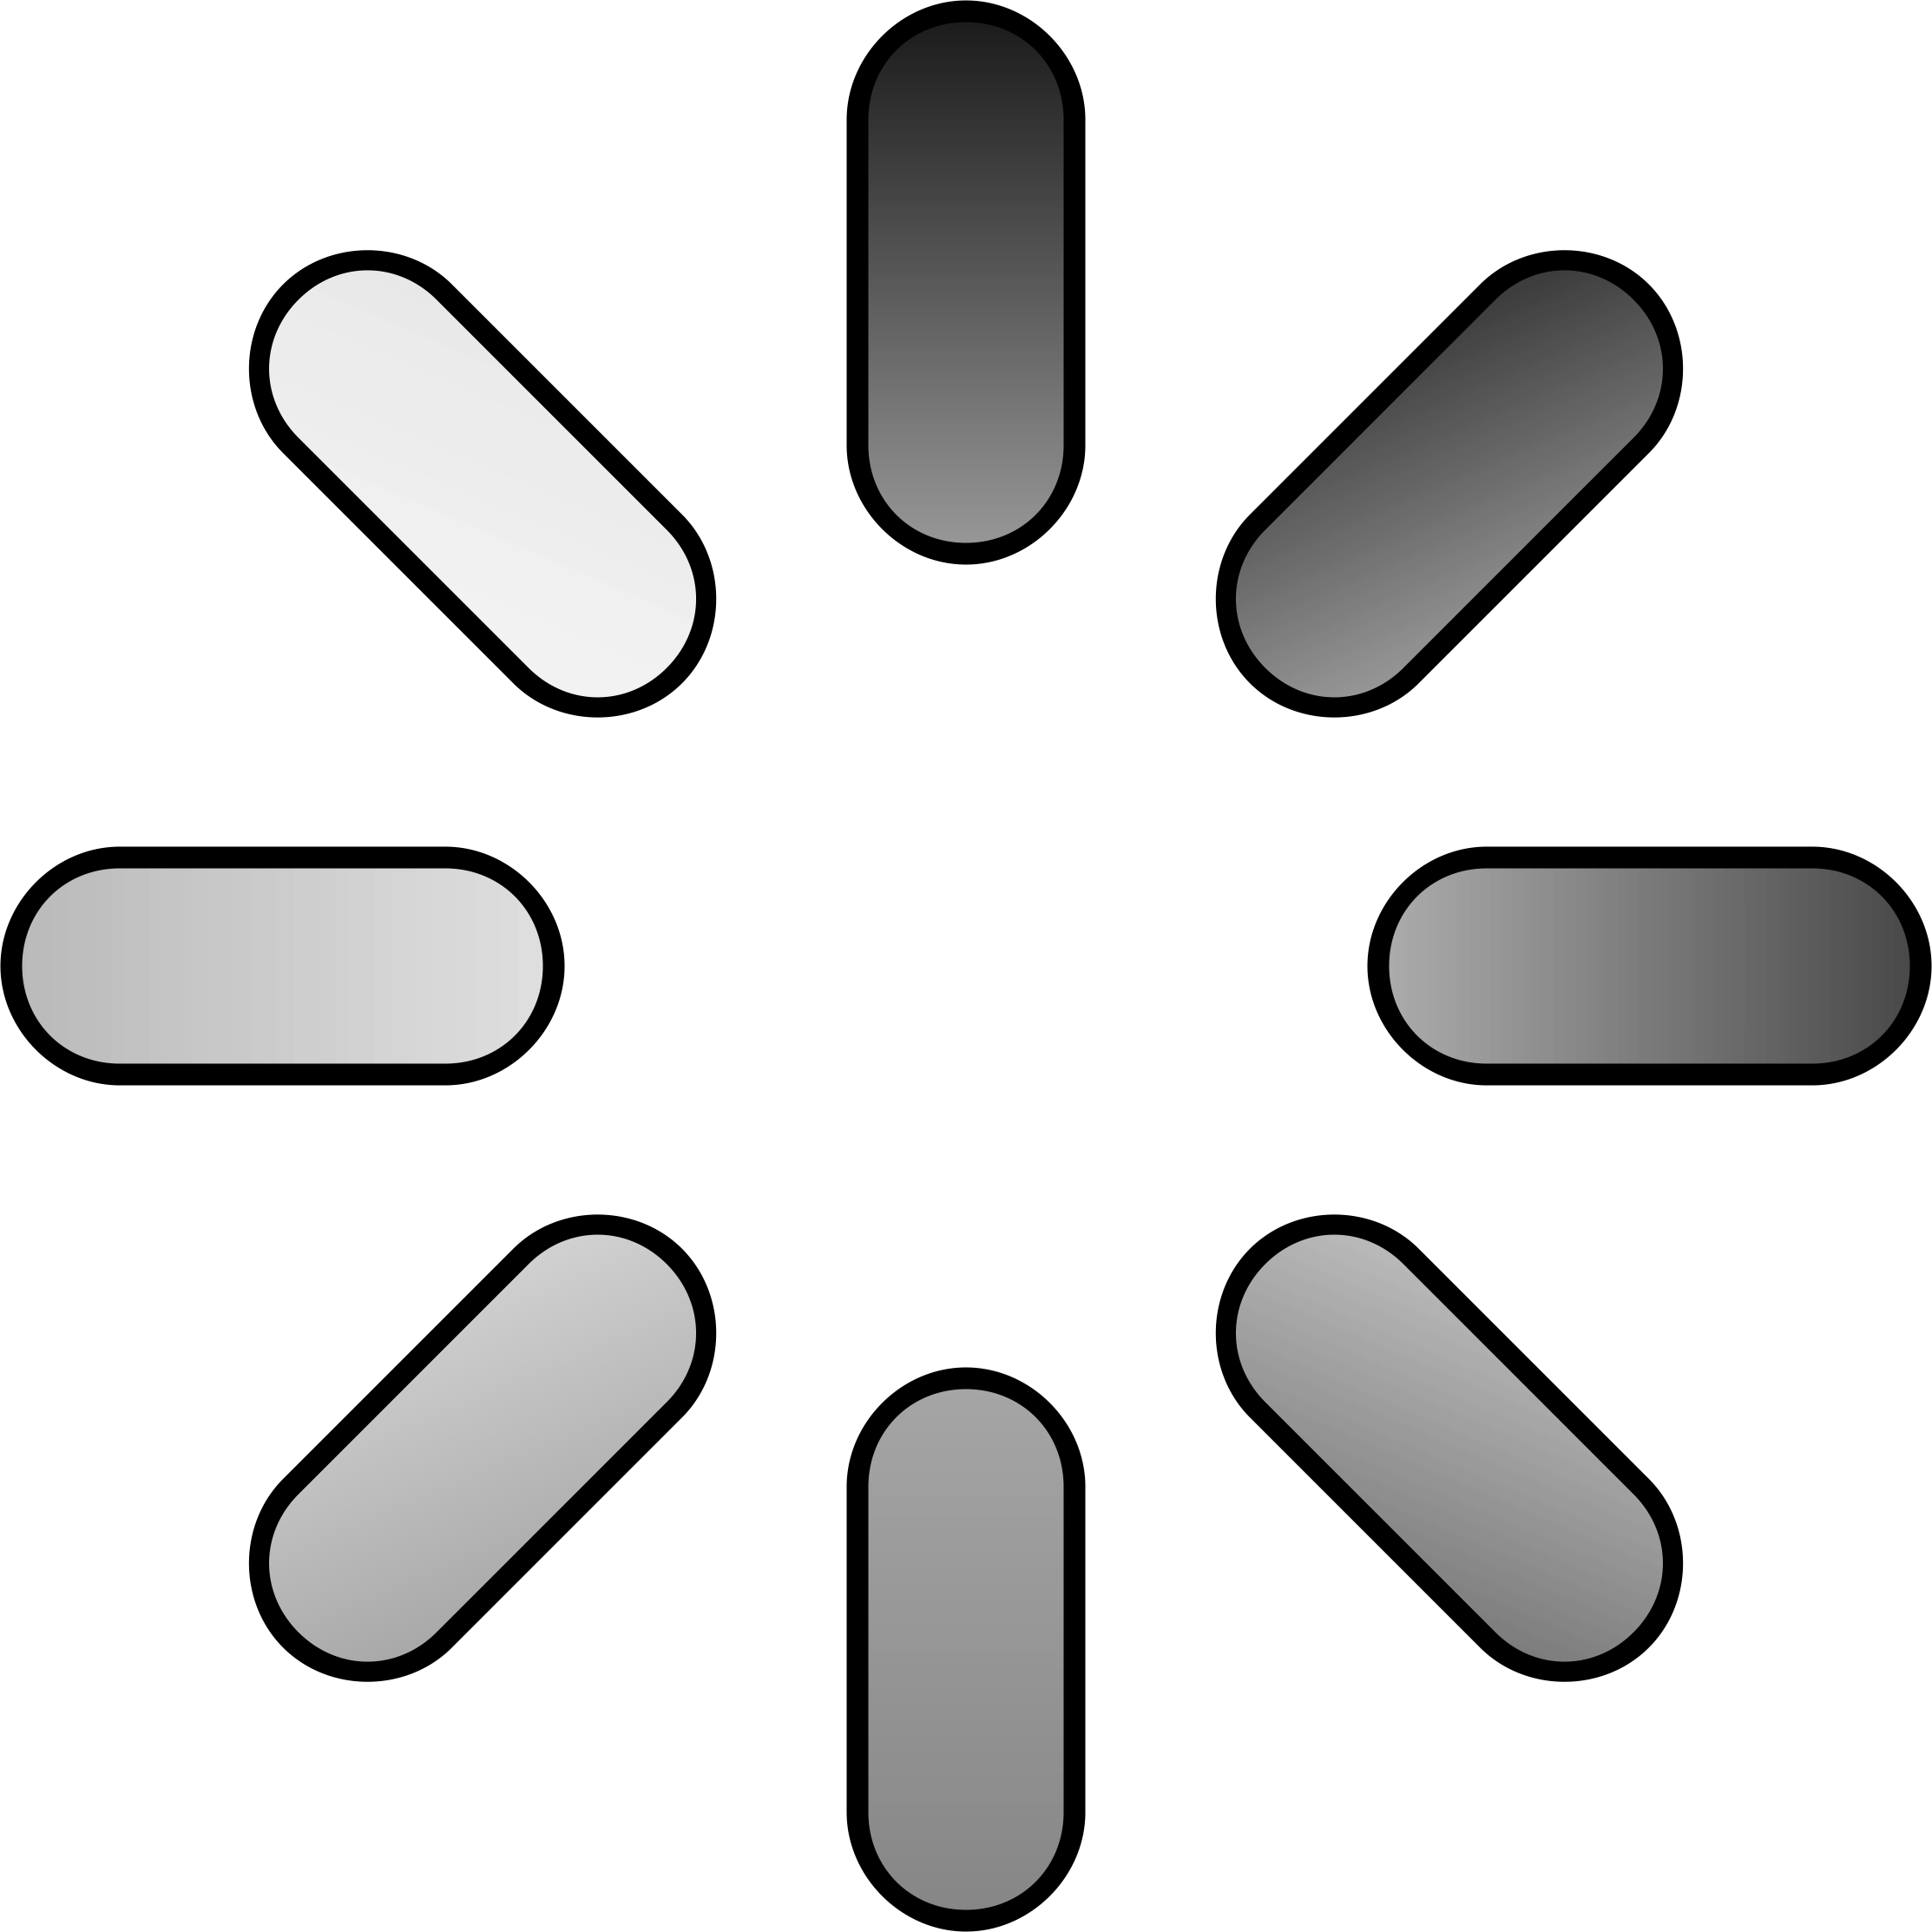 Loading clipart Loading Animated icon Clipart Animated